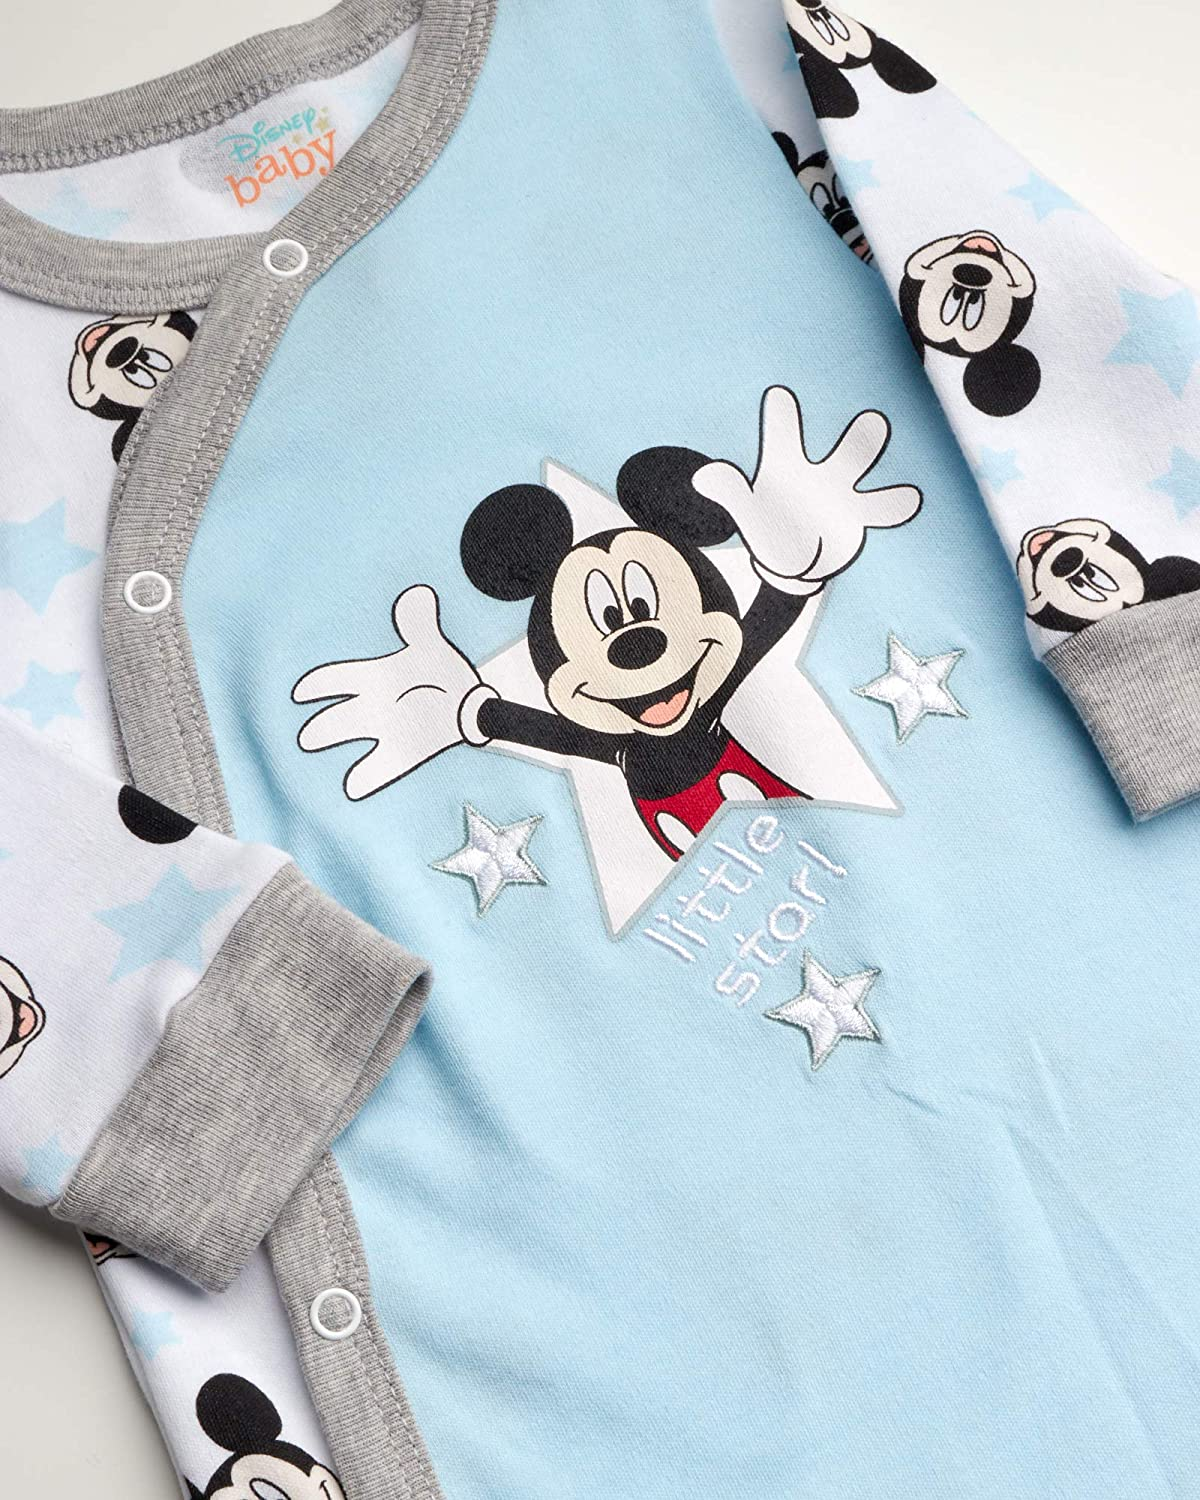 and Dumbo Disney Baby Boys and Girls Newborn 2-Piece Footed Sleep and Play Set Minnie Mouse Mickey Mouse